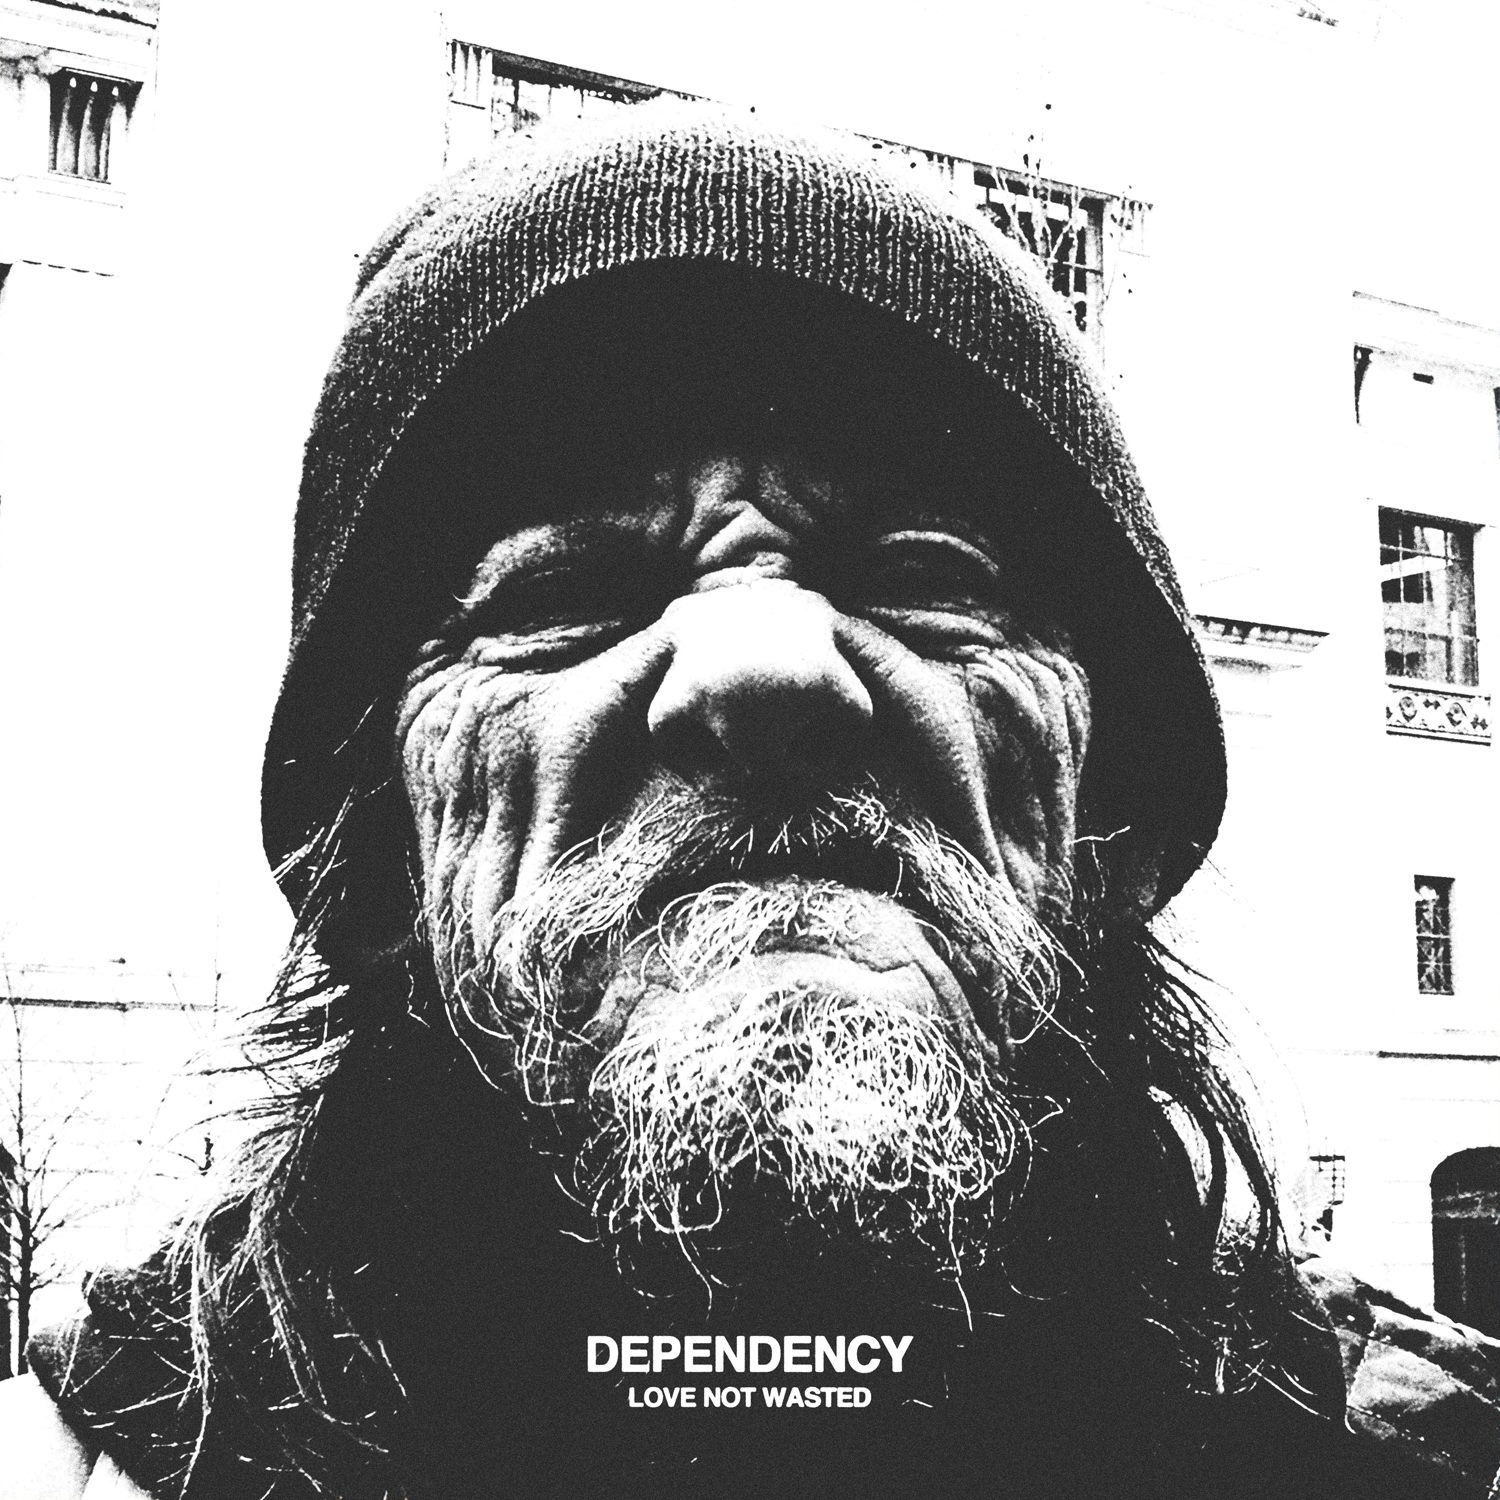 Dependency - Love Not Wasted